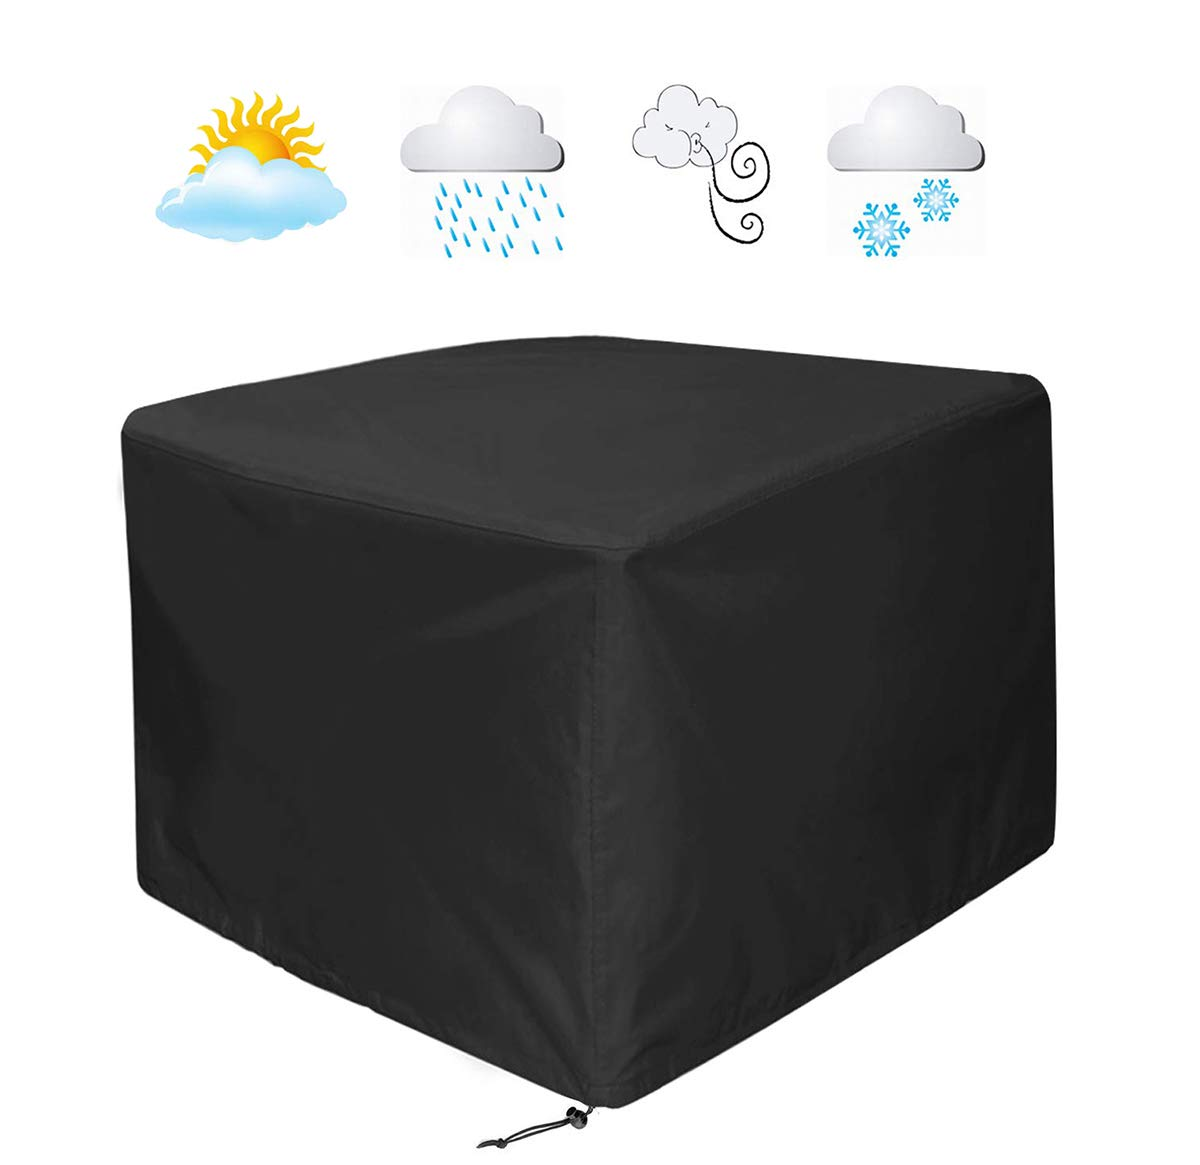 Wondrous Womaco Heavy Duty Square Patio Fire Pit Table Cover Waterproof Outdoor Furniture Cover 48 X 48 X 29 Black Spiritservingveterans Wood Chair Design Ideas Spiritservingveteransorg